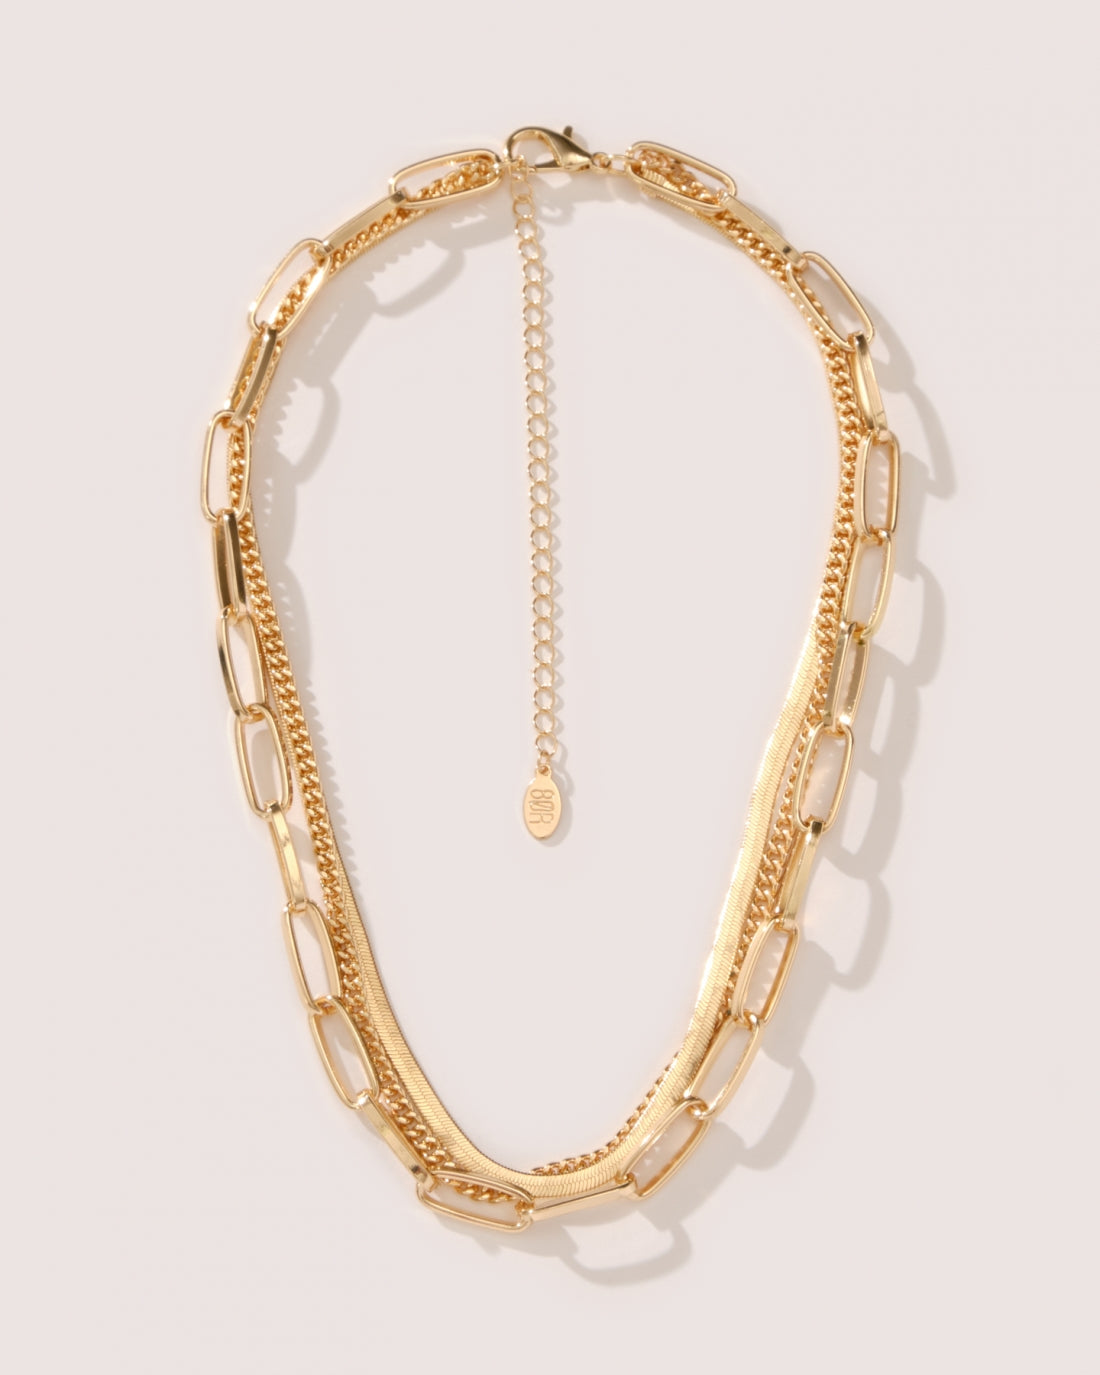 109 LAYERED NECKLACE